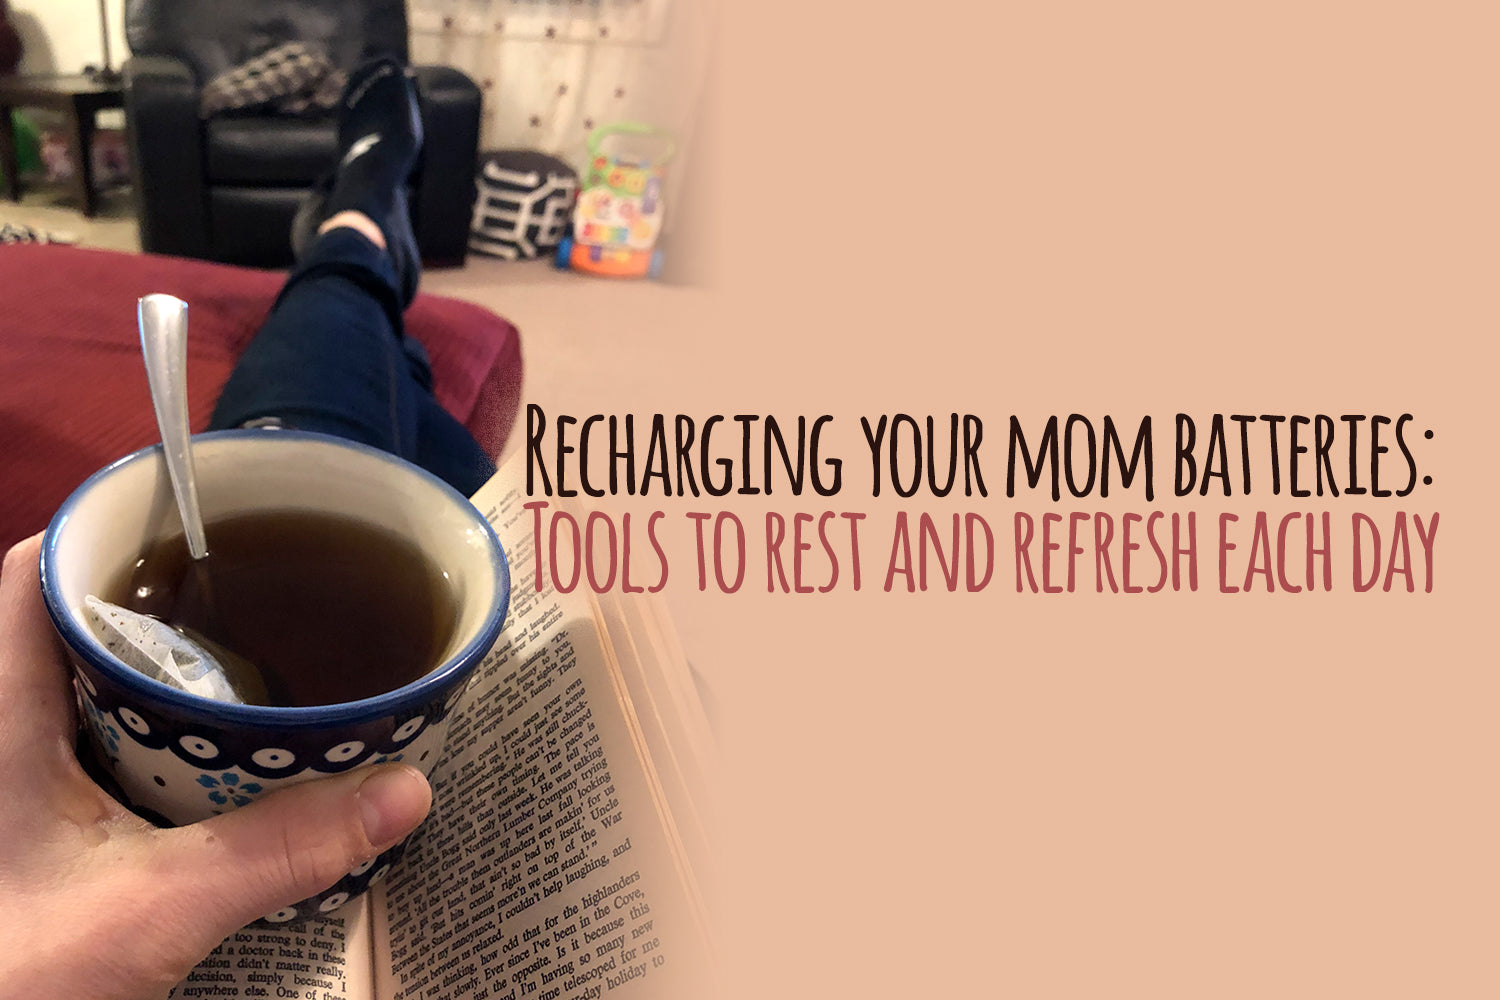 Recharging your mom batteries: Tools to rest and refresh each day